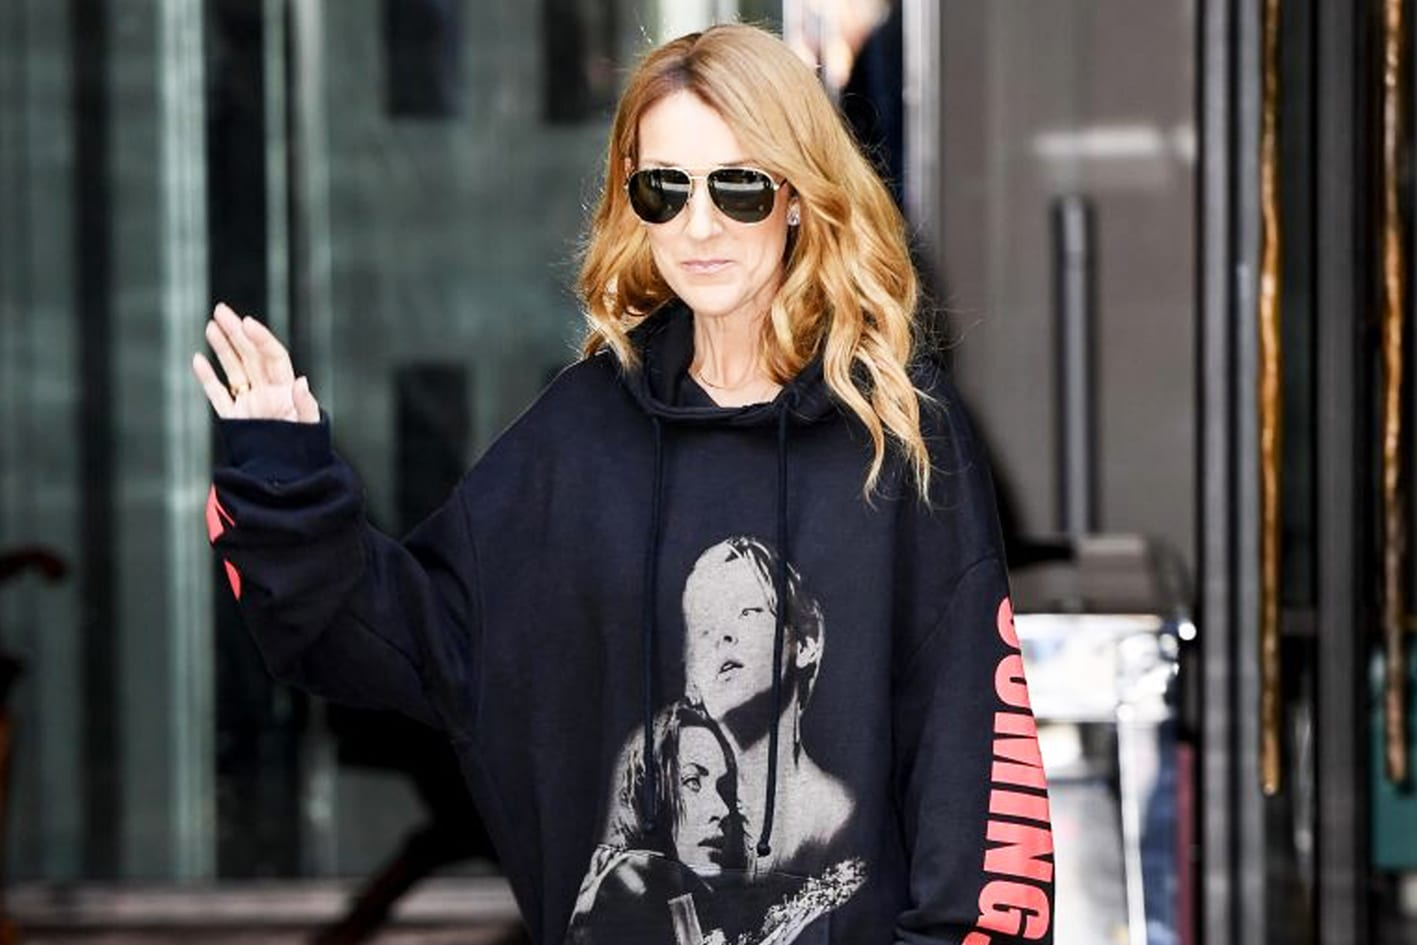 Celine Dion Vetements Hoodie Titanic Paris Couture Fashion Week Style Antidote